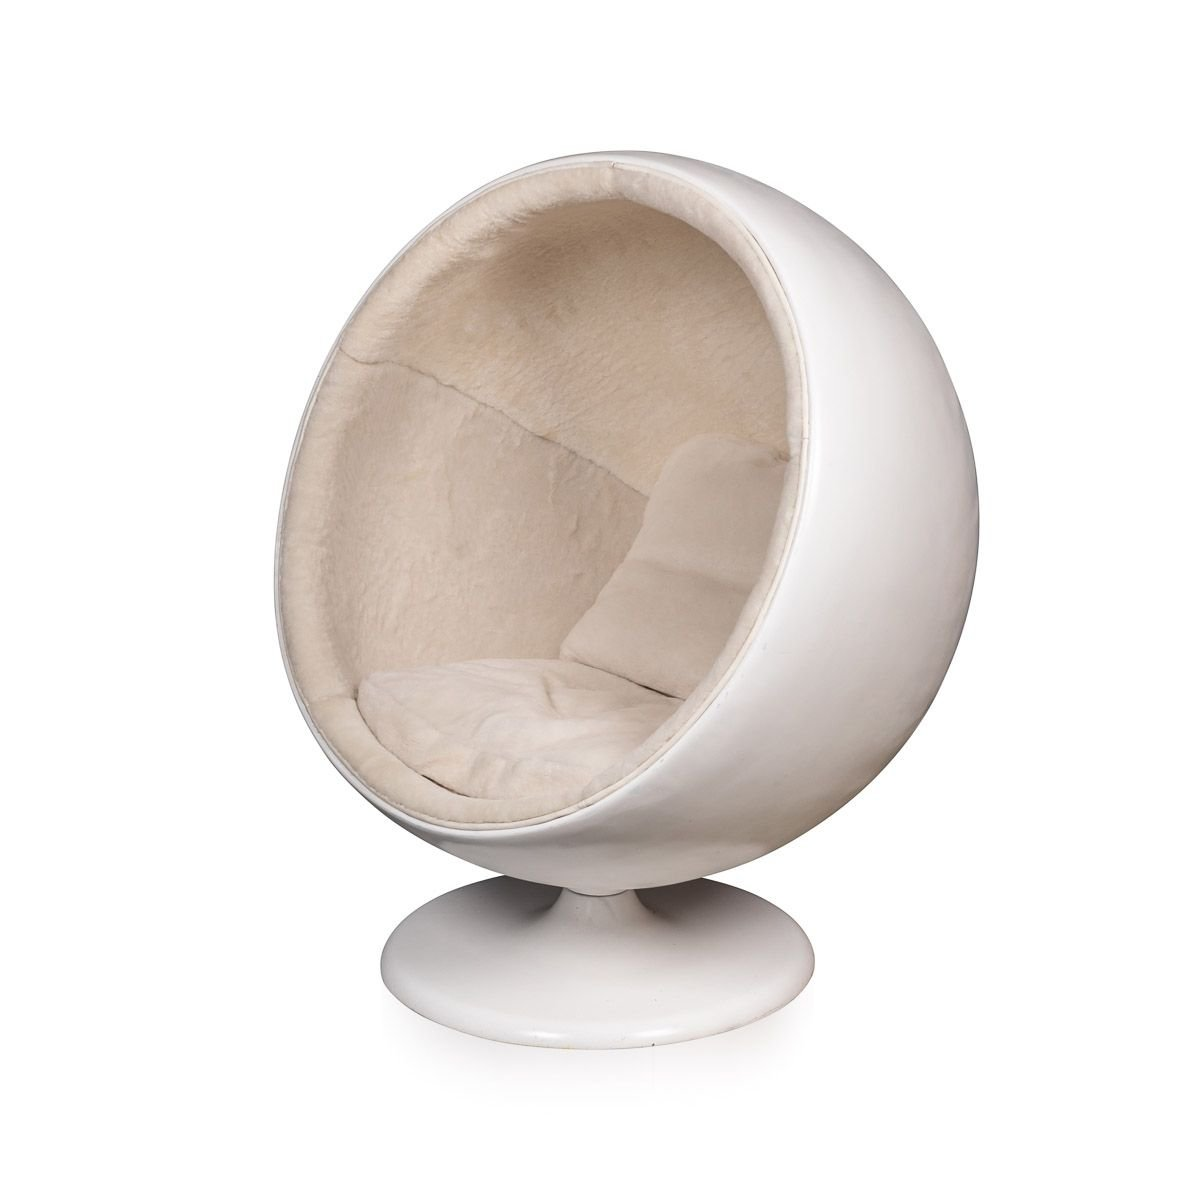 Ball Chair Https://www.pamono.co.uk/20th-century-retro-ball-chair-in-the-style-of-eero-aarnio-from-asko-1960s